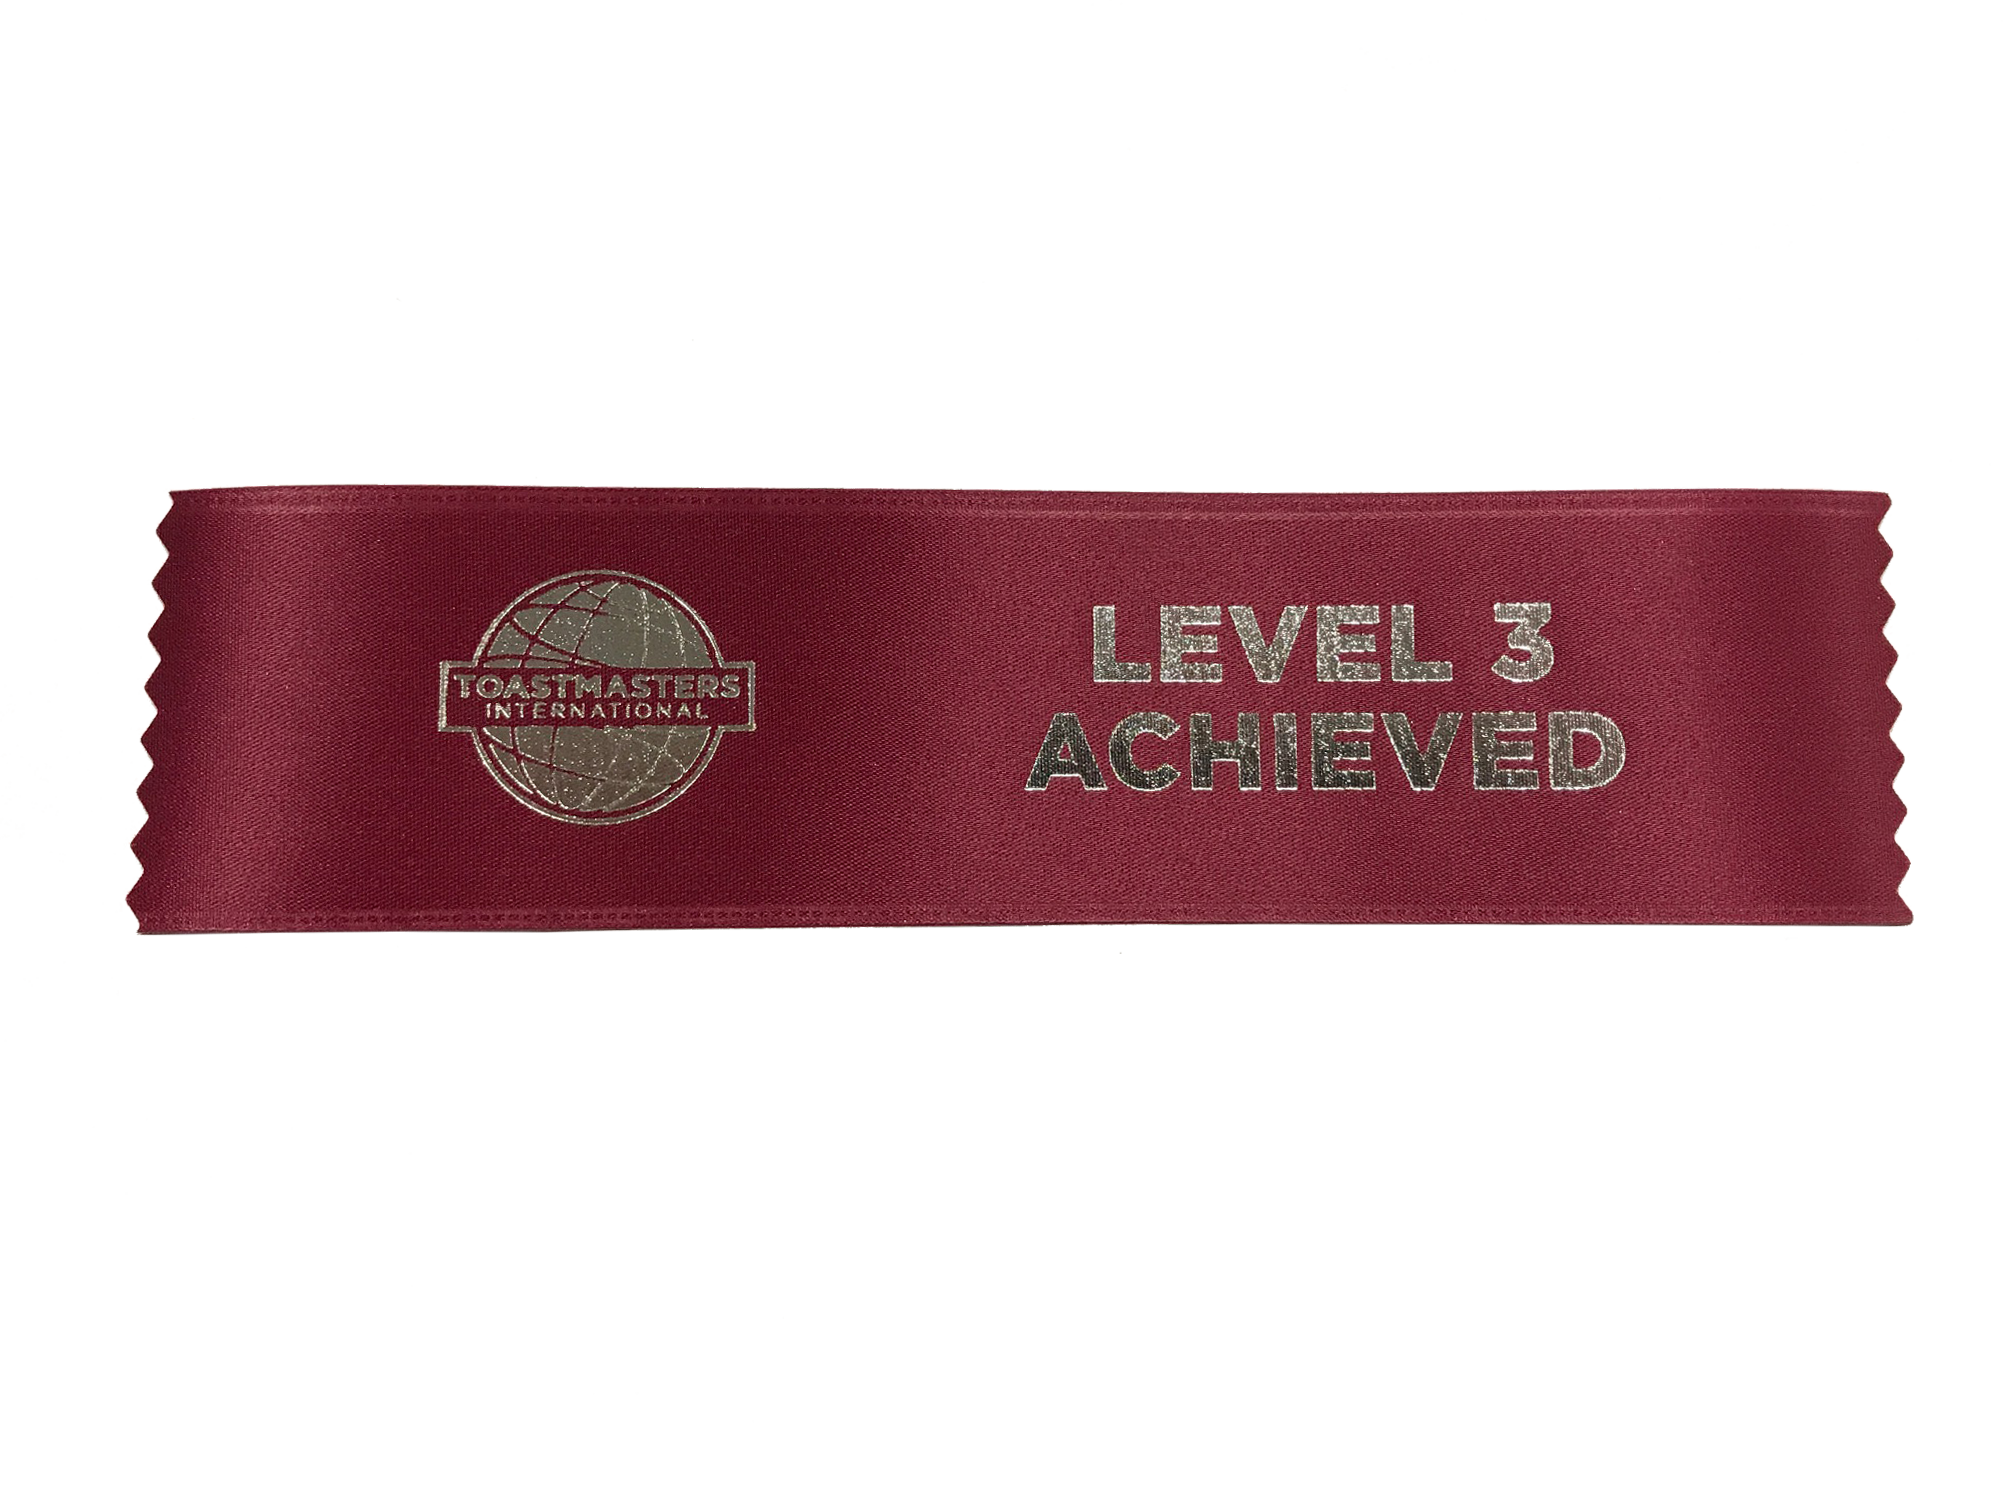 Level 3 Achieved Ribbon